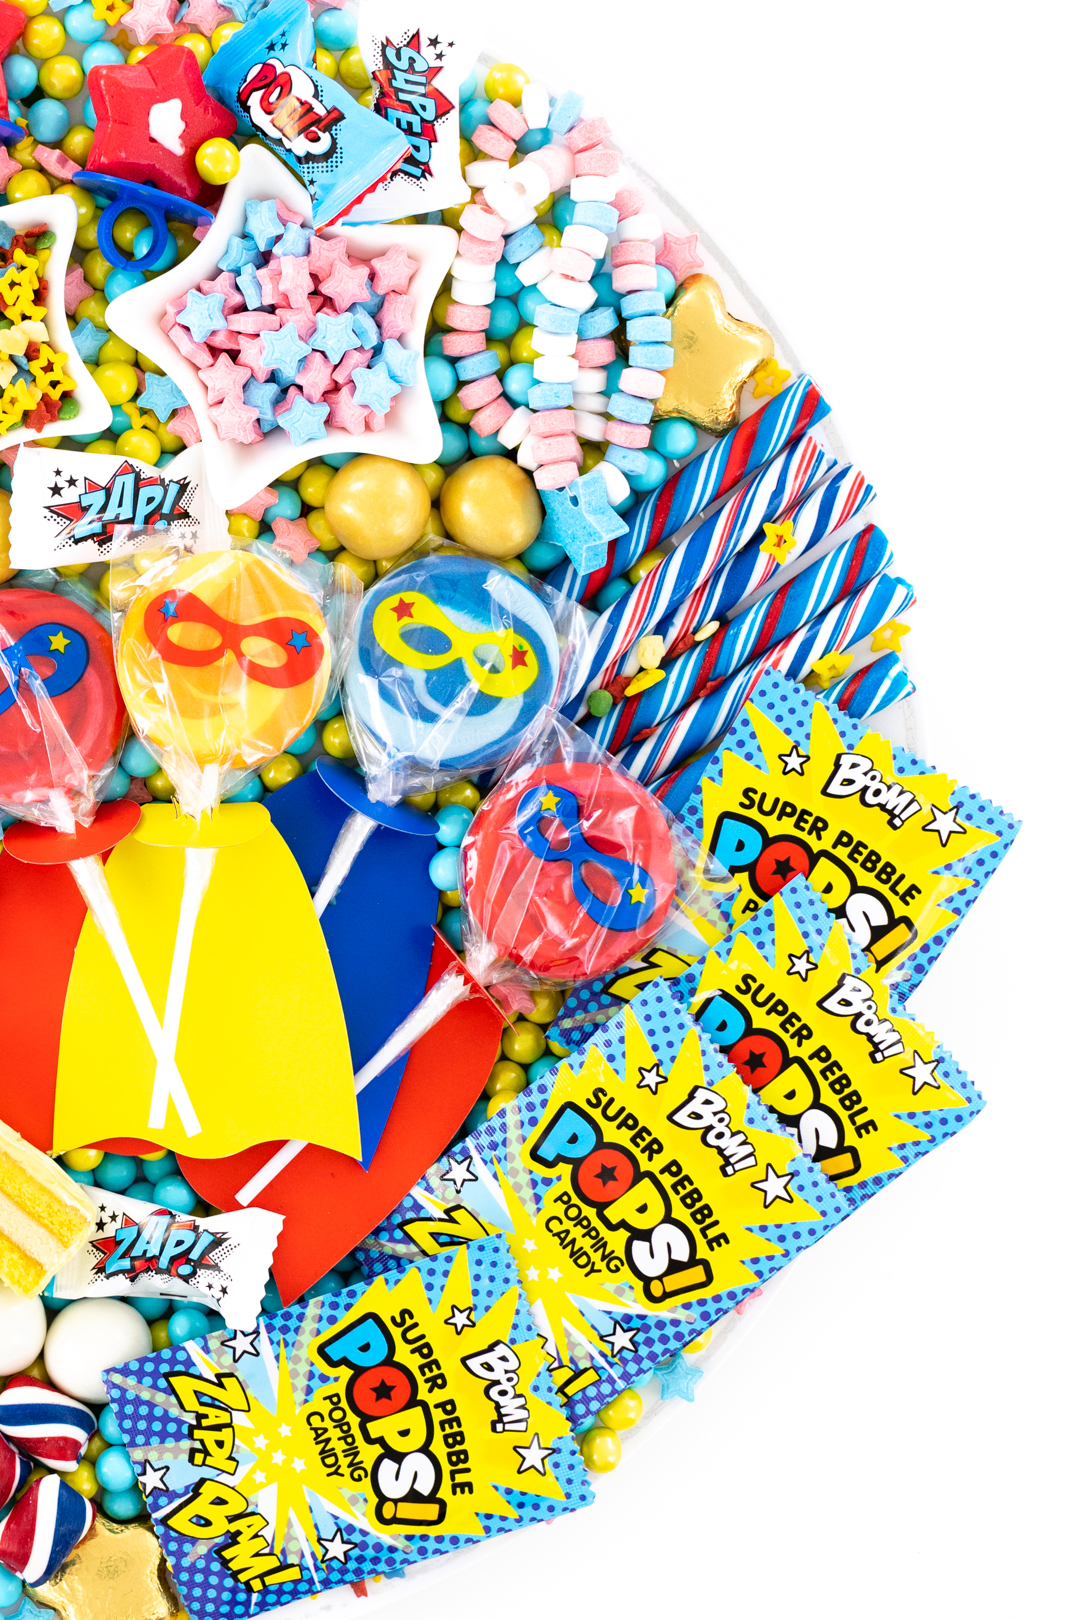 superhero lollipops with capes and superhero popping candy